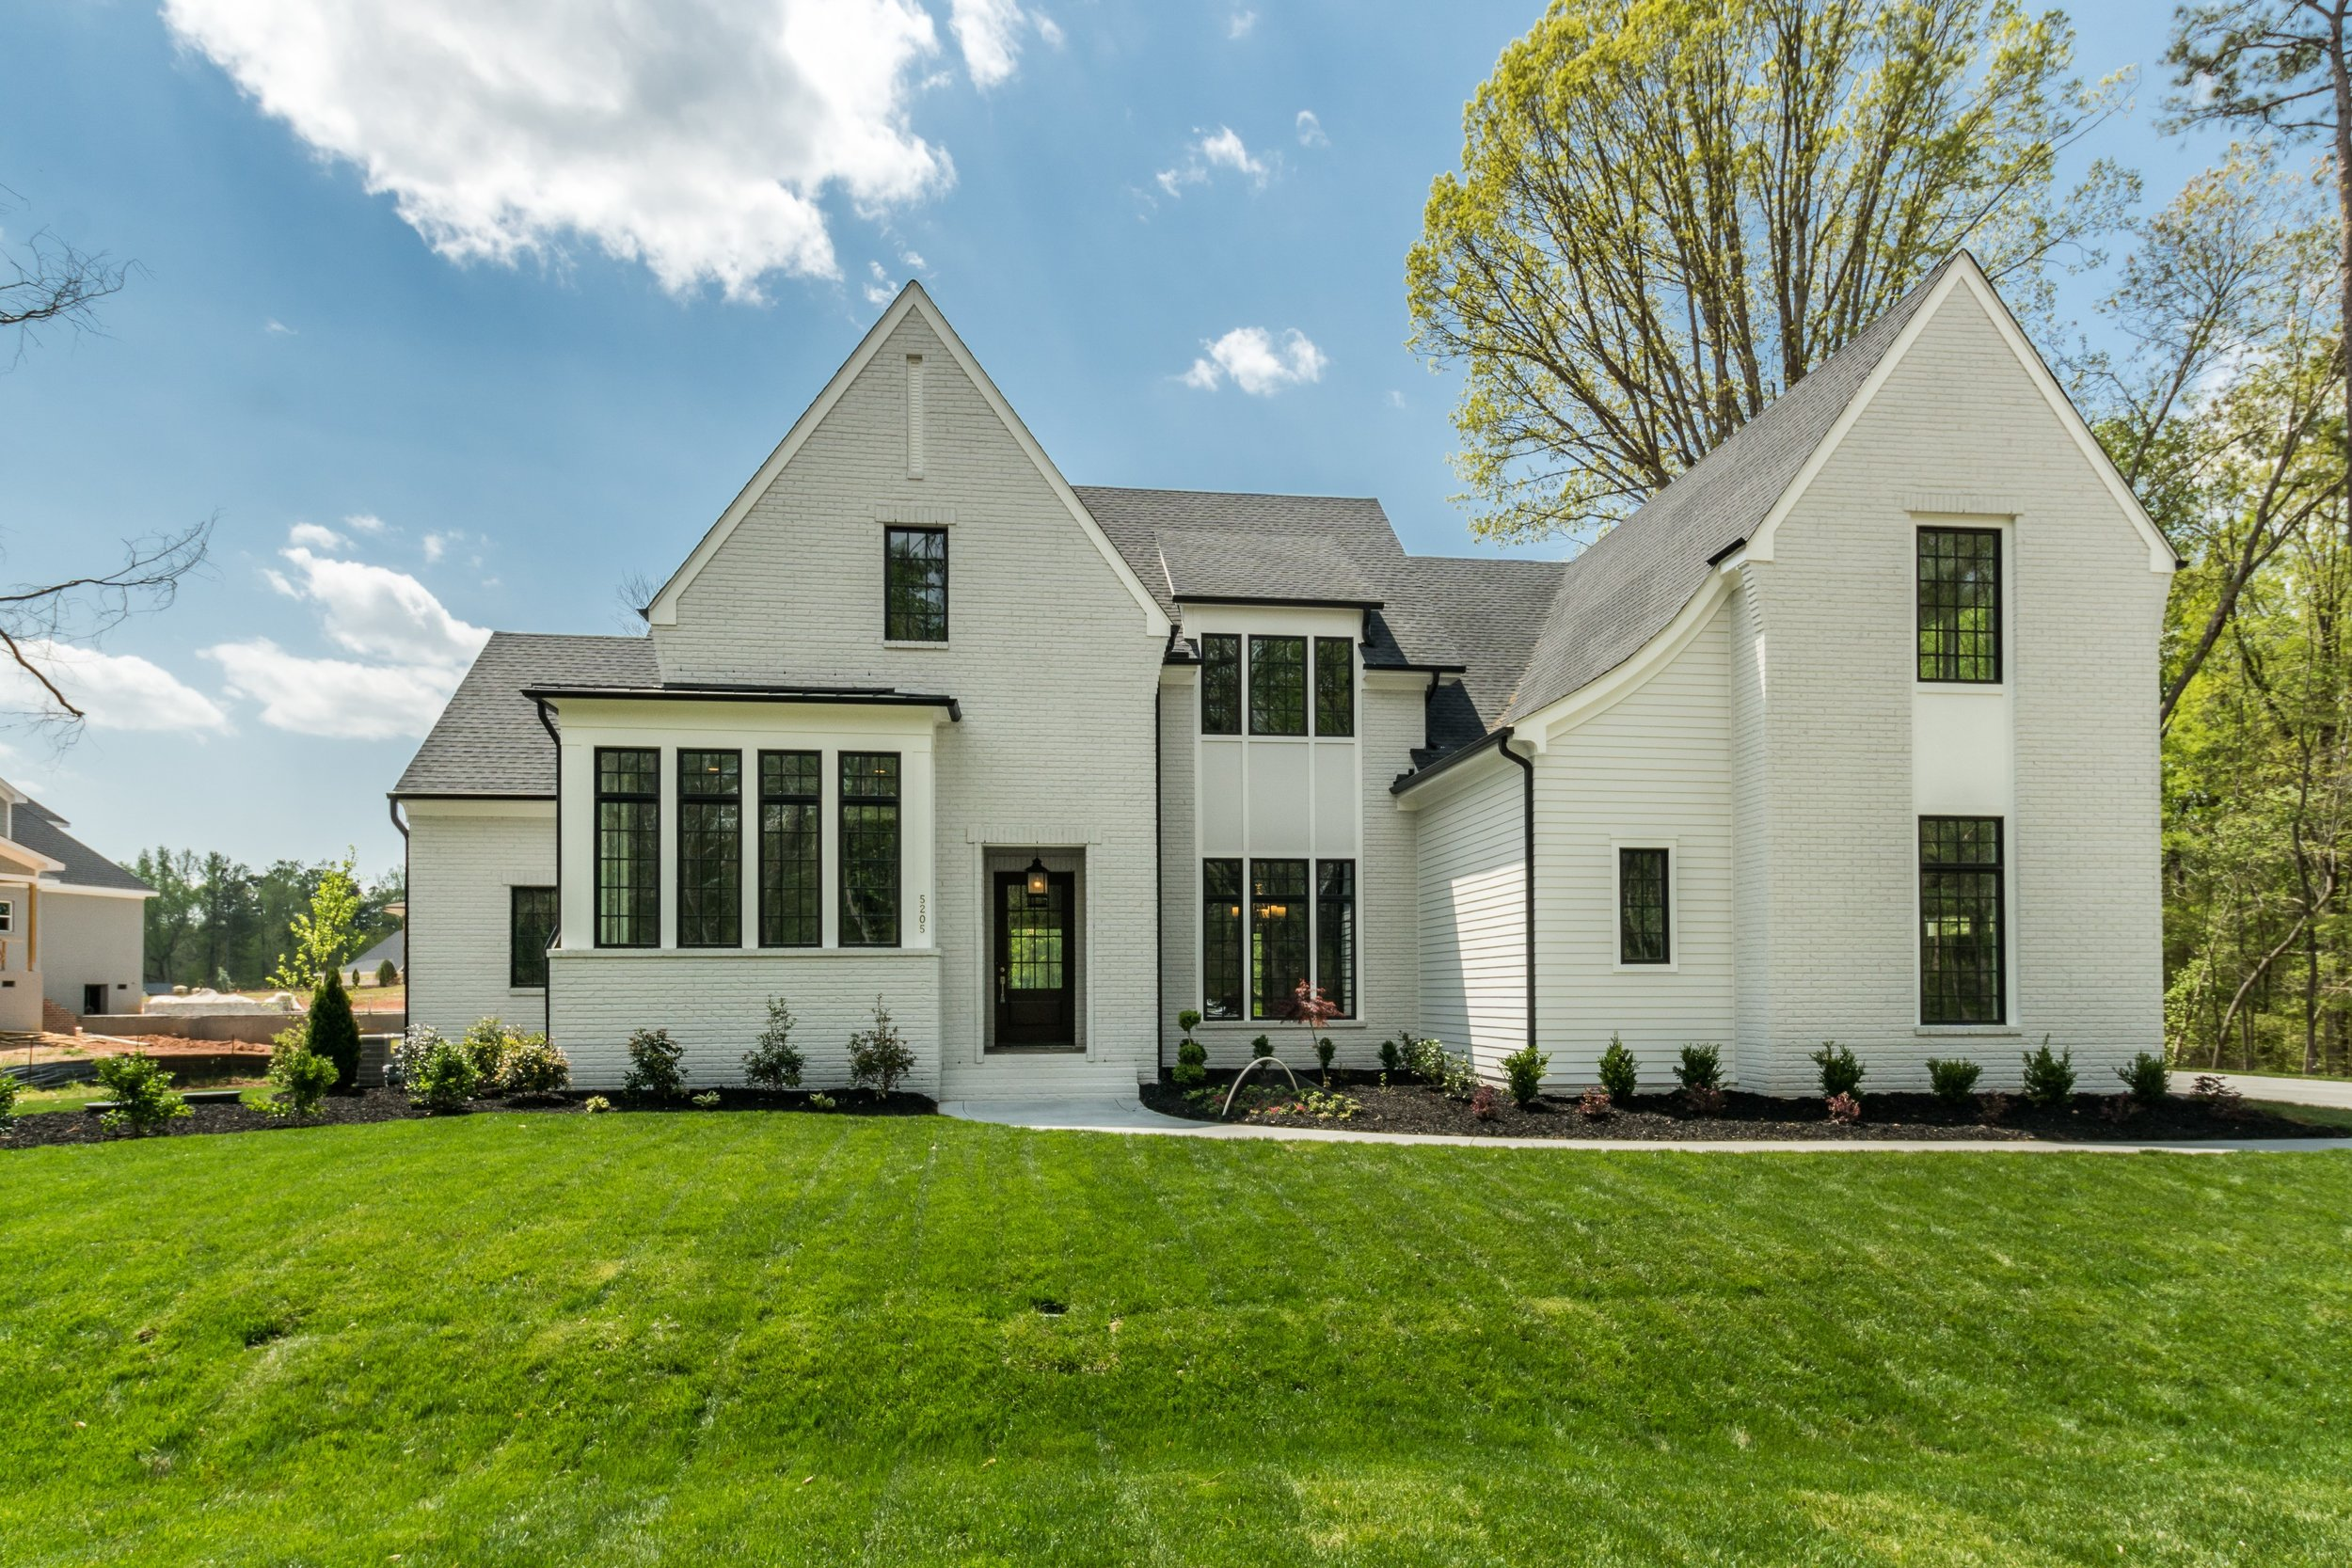 Downtown Raleigh - ITB - 3437 Churchill - Luxury Custom Homes built by award winning Exeter Building Company